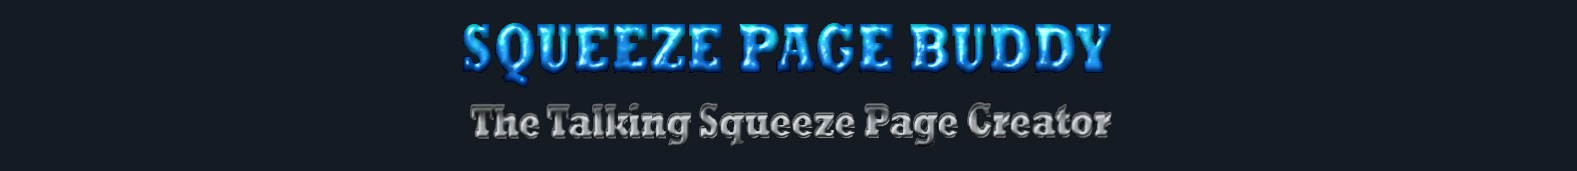 The Squeeze Page Buddy